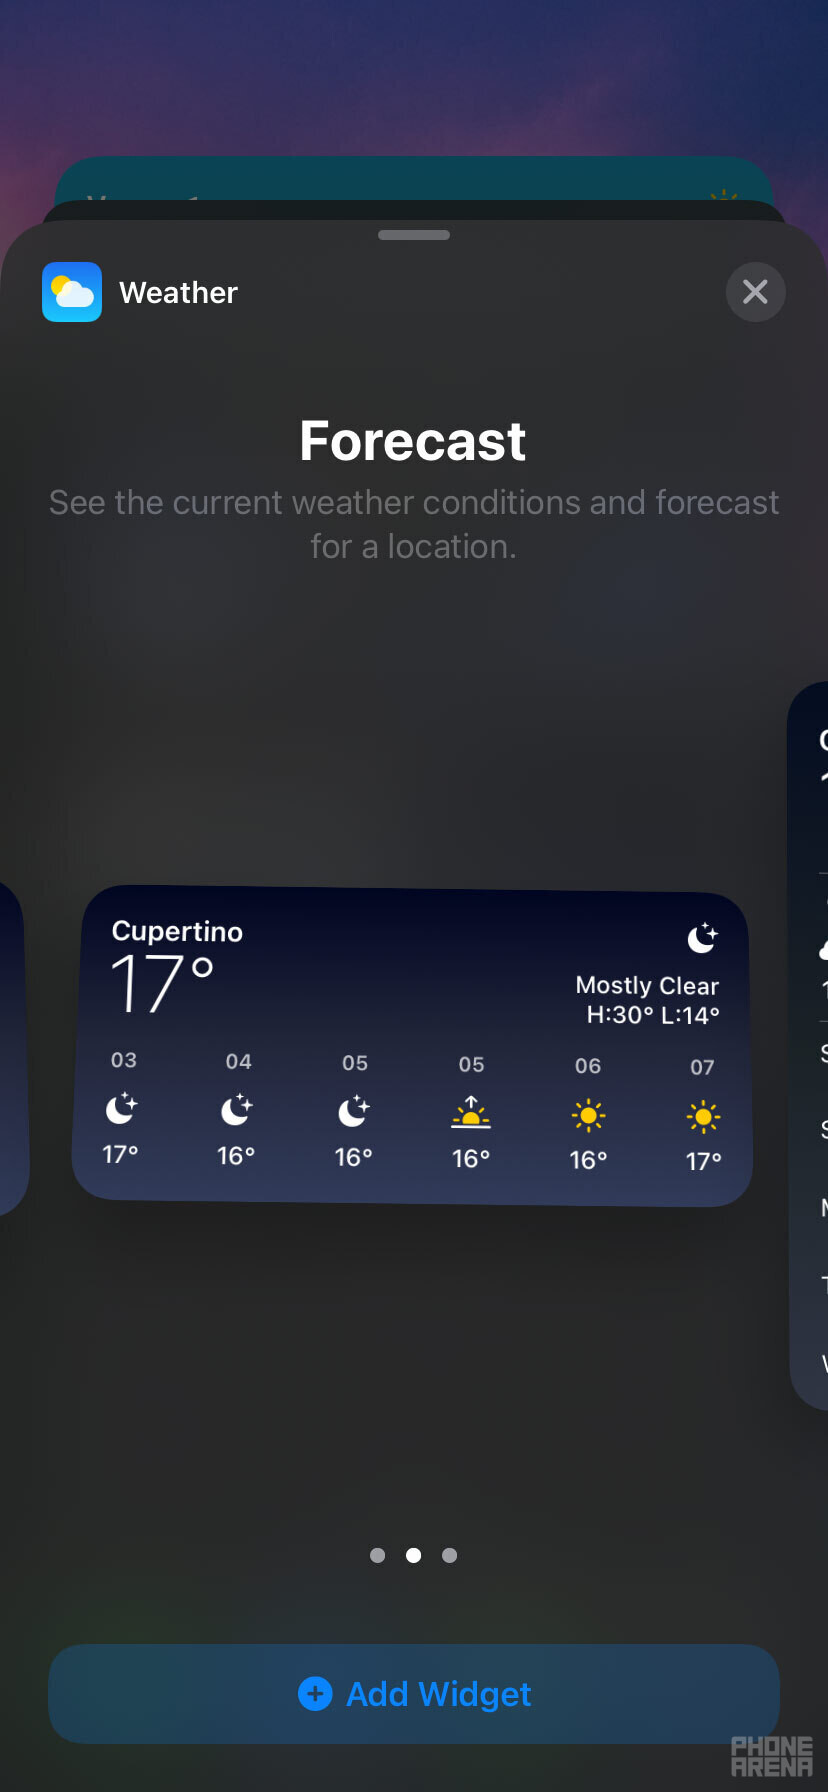 How to add widgets in iOS 14 - iOS 14 tips and tricks: Supercharge your iPhone experience with iOS 14